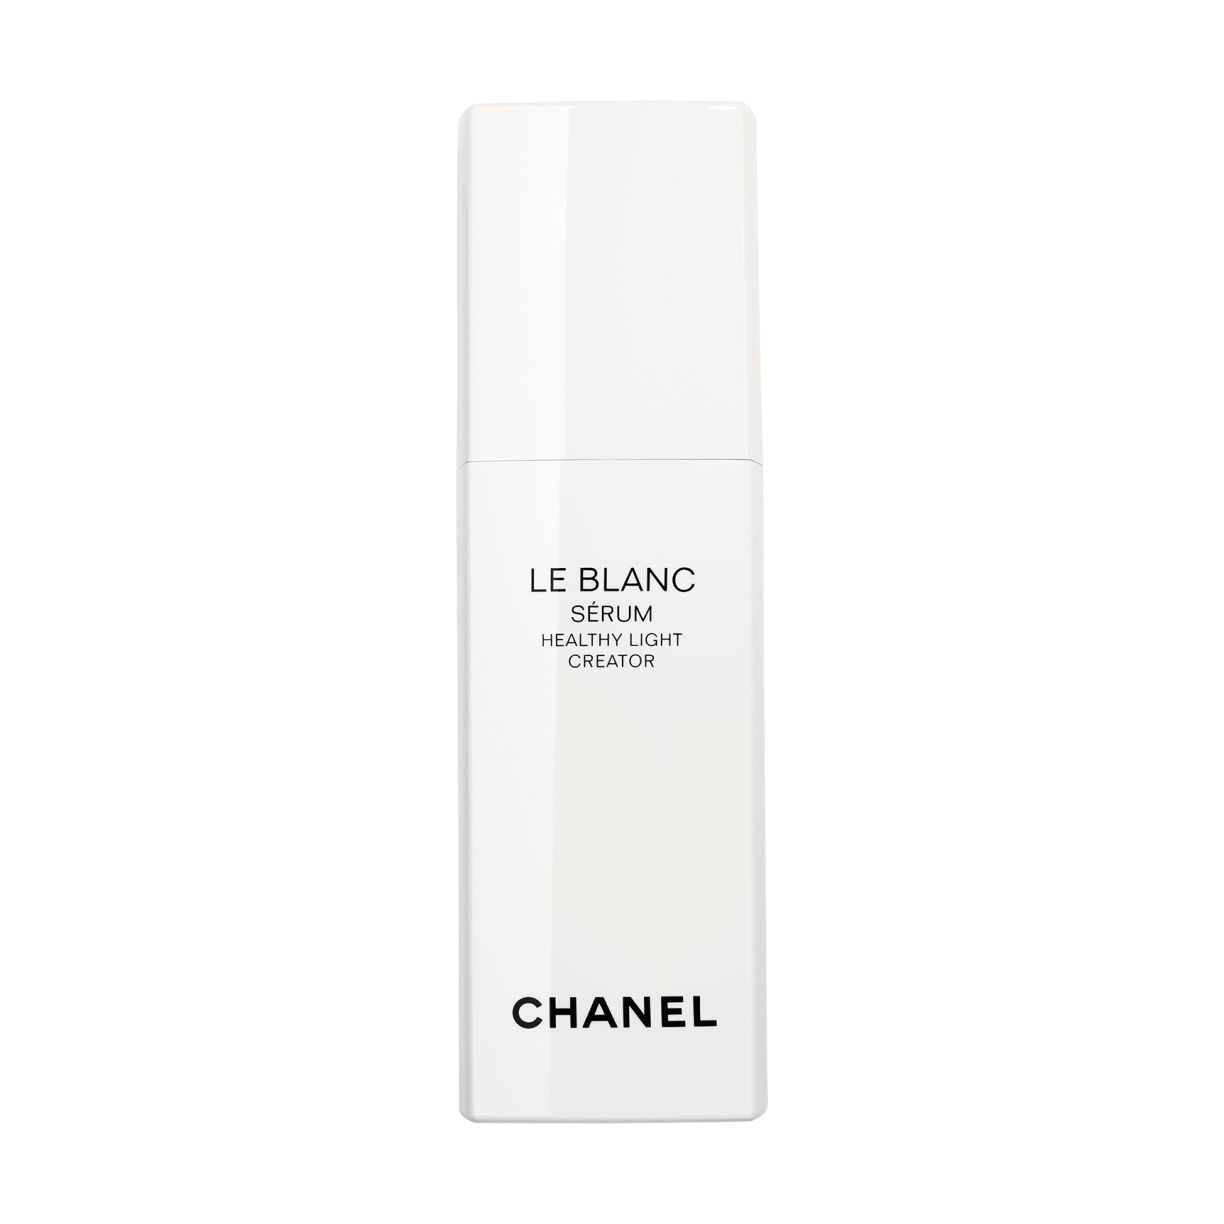 LE BLANC SÉRUM HEALTHY LIGHT CREATOR REVITALISING - WHITENING - RESTORING 30ml